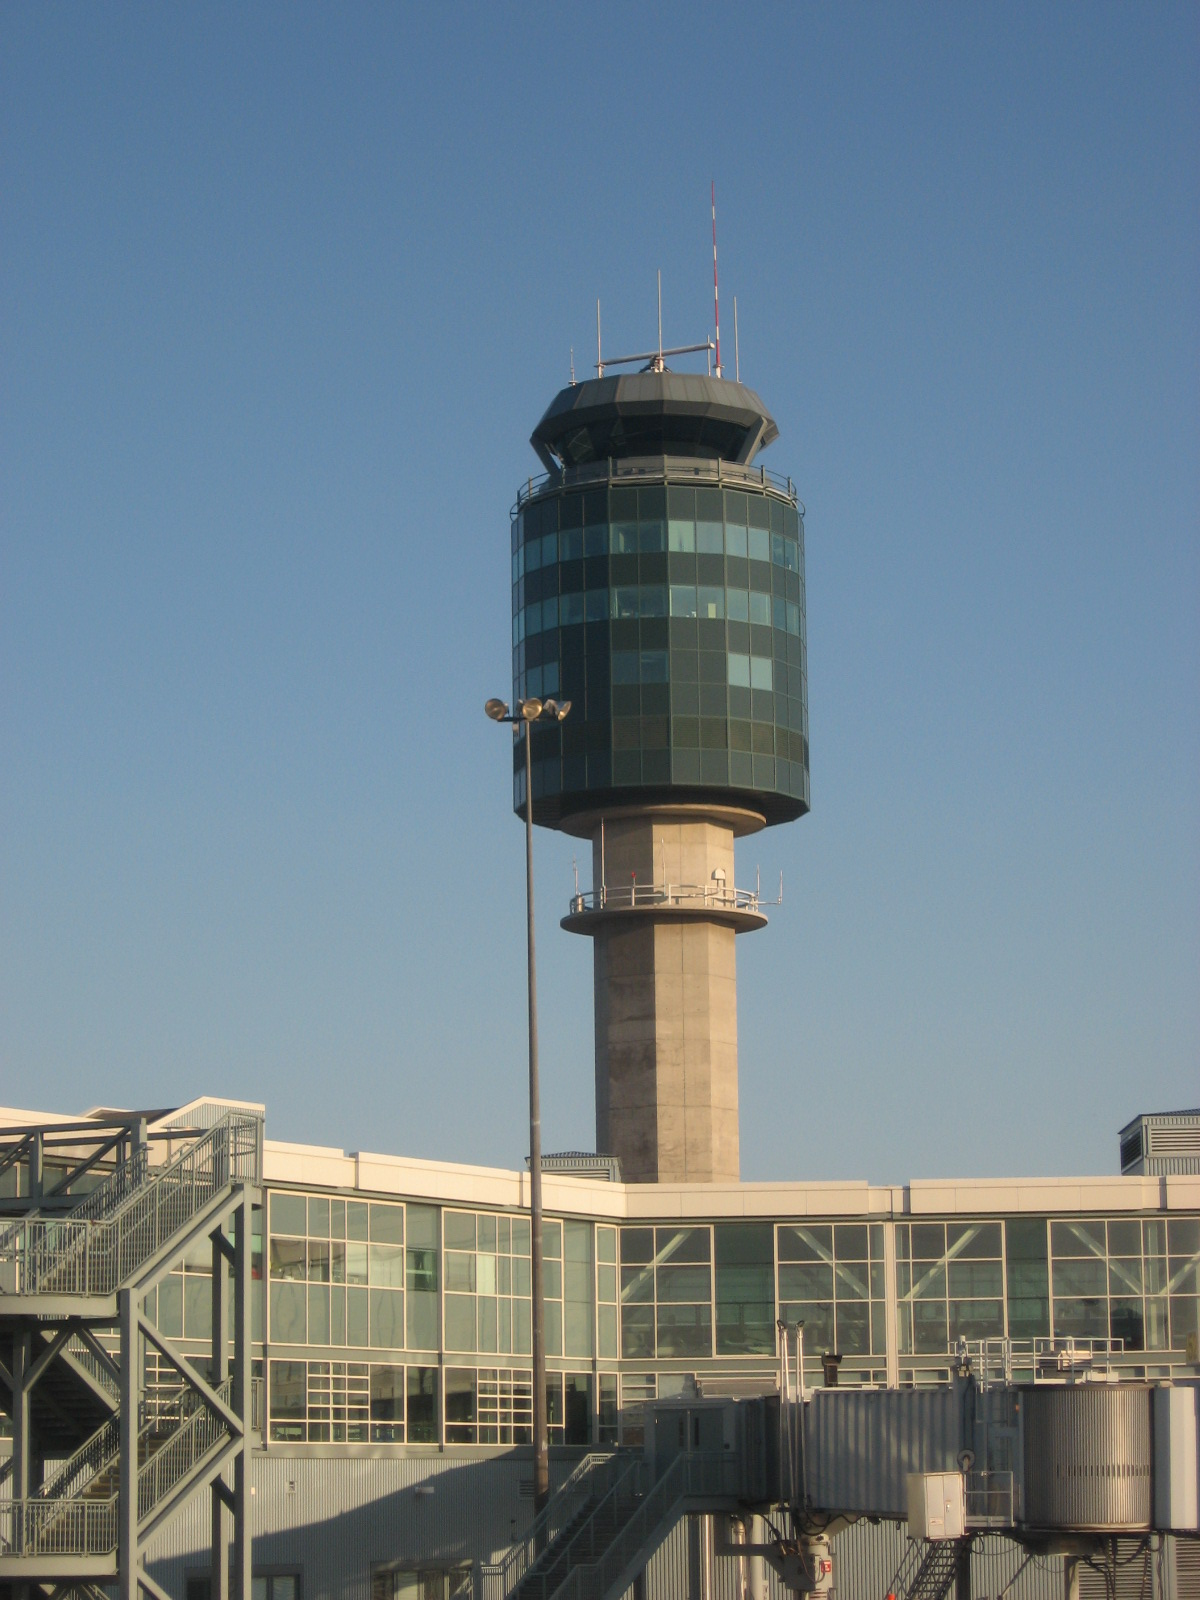 File:Vancouver's Control Tower.jpg - Wikipedia